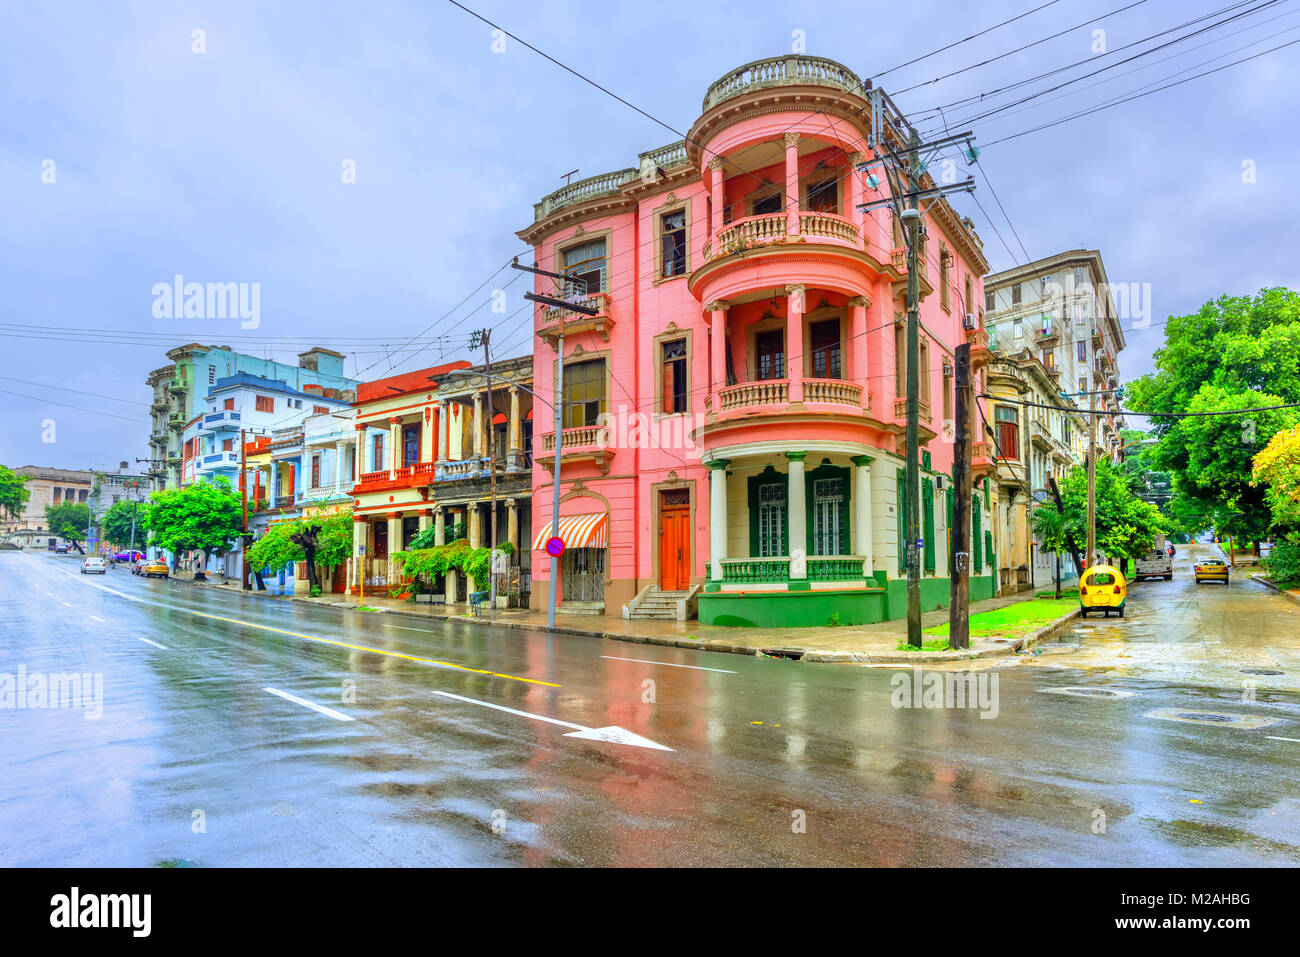 Ancient multi-colored buildings with columns on the street of Cuban Havana at noon after rain, asphalt and blue - Stock Image